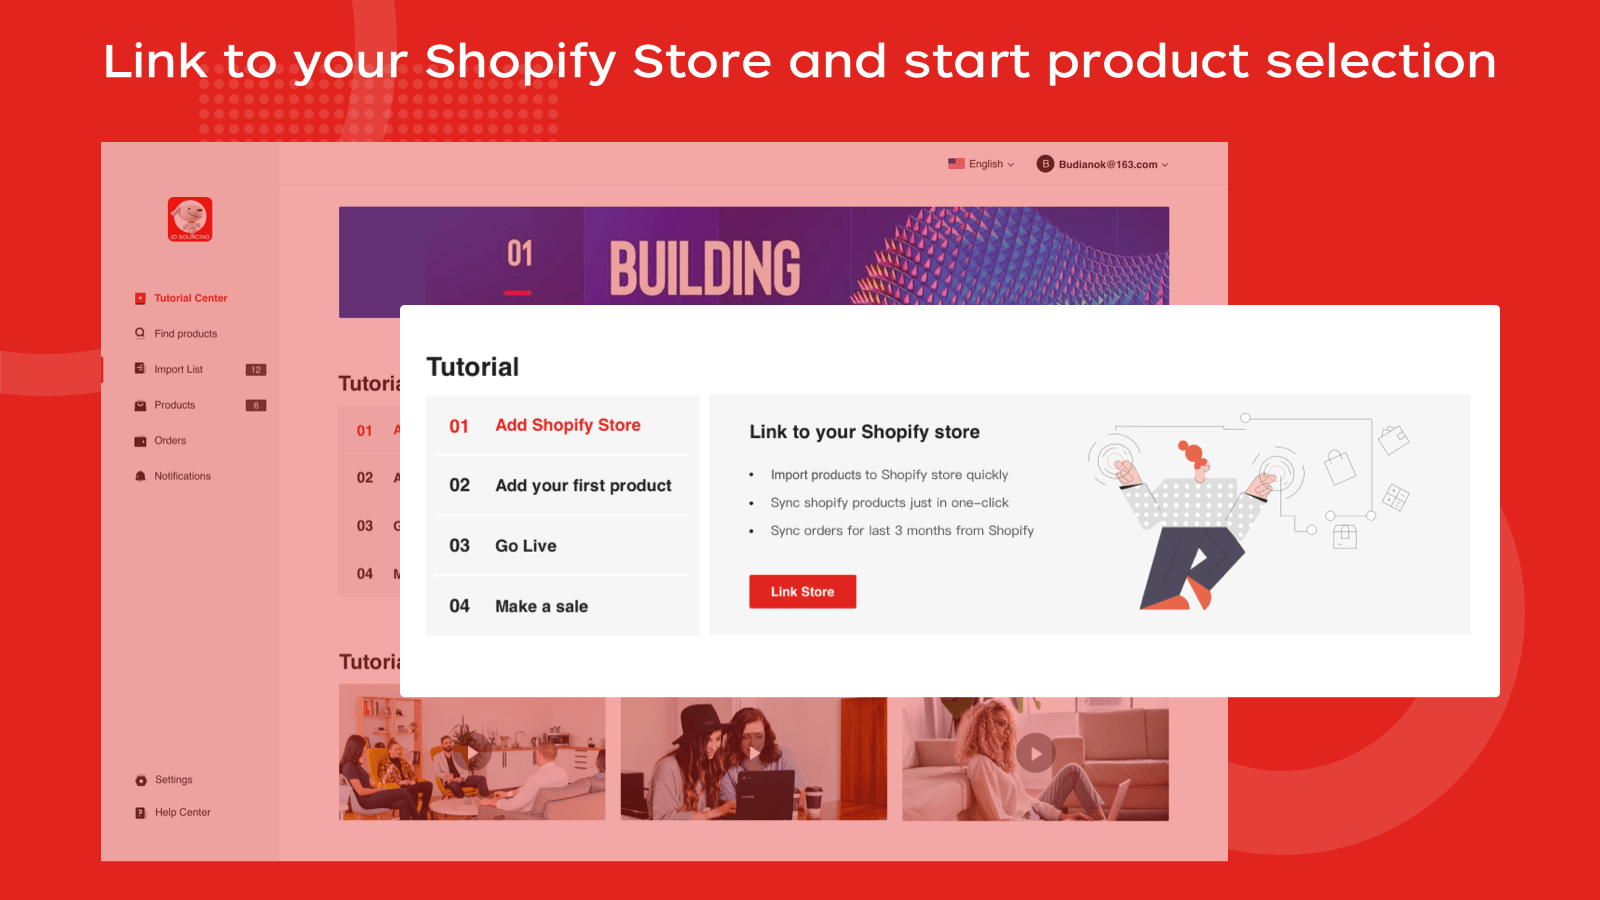 Link to your Shopify Store and start product selection